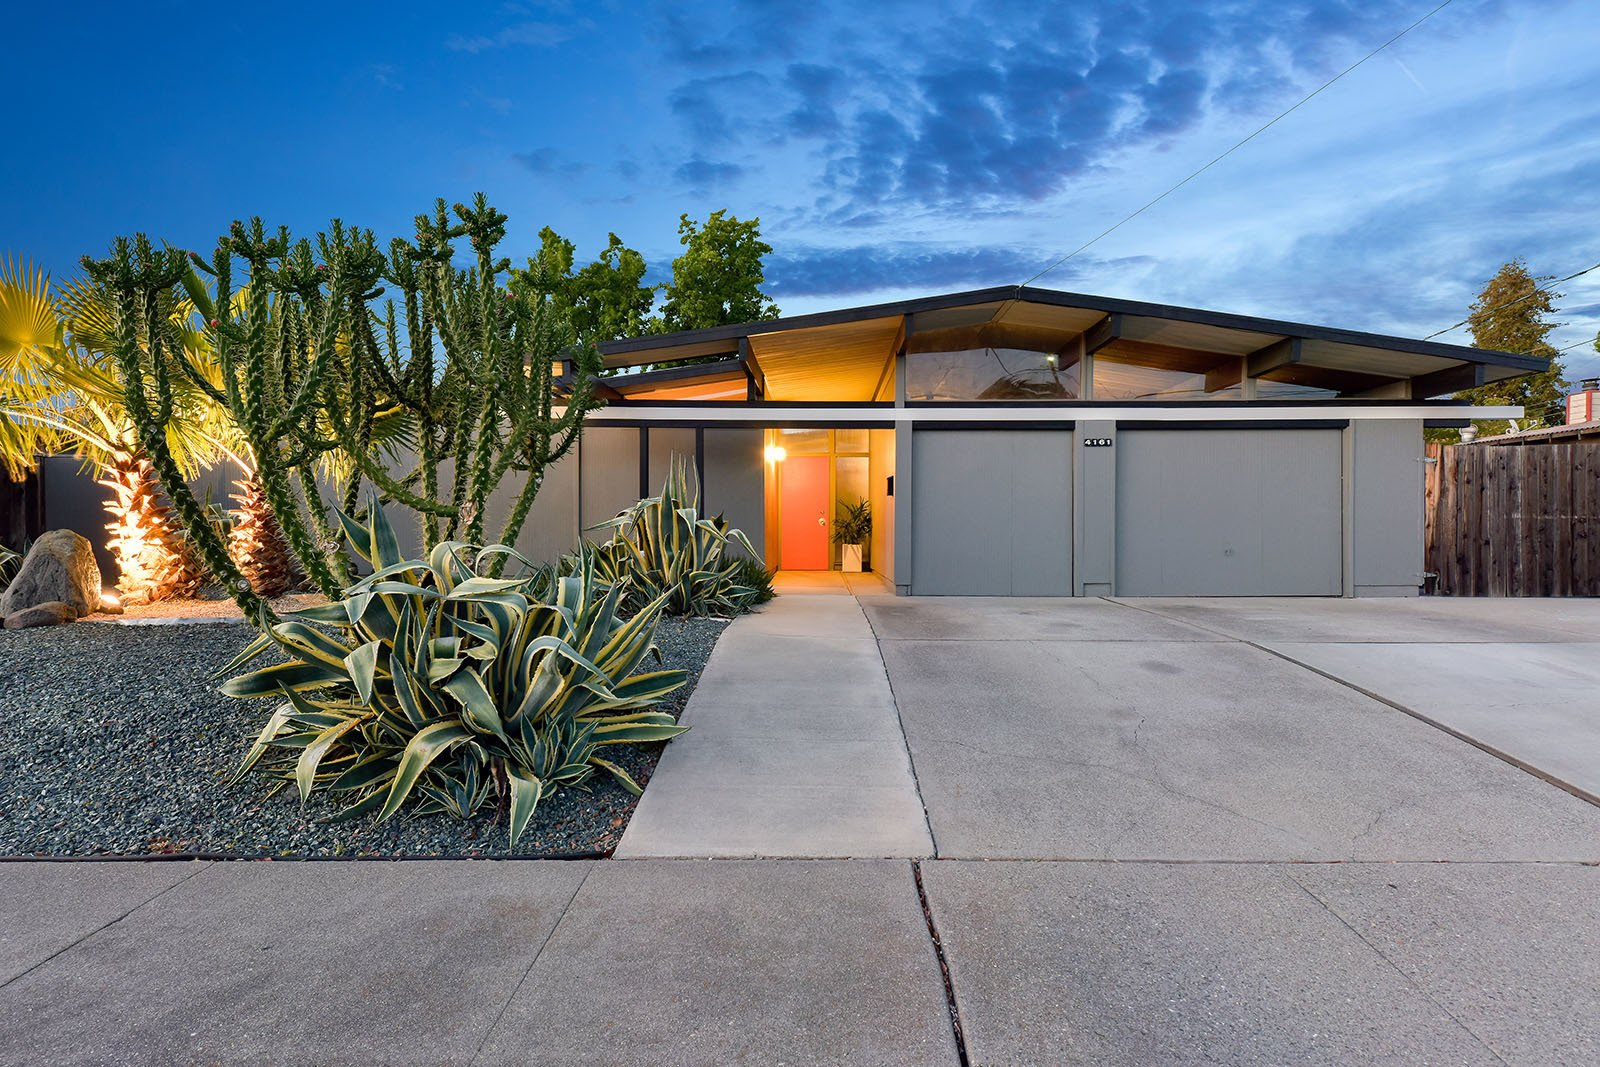 Real Estate Roundup 10 Midcentury Modern Eichlers For